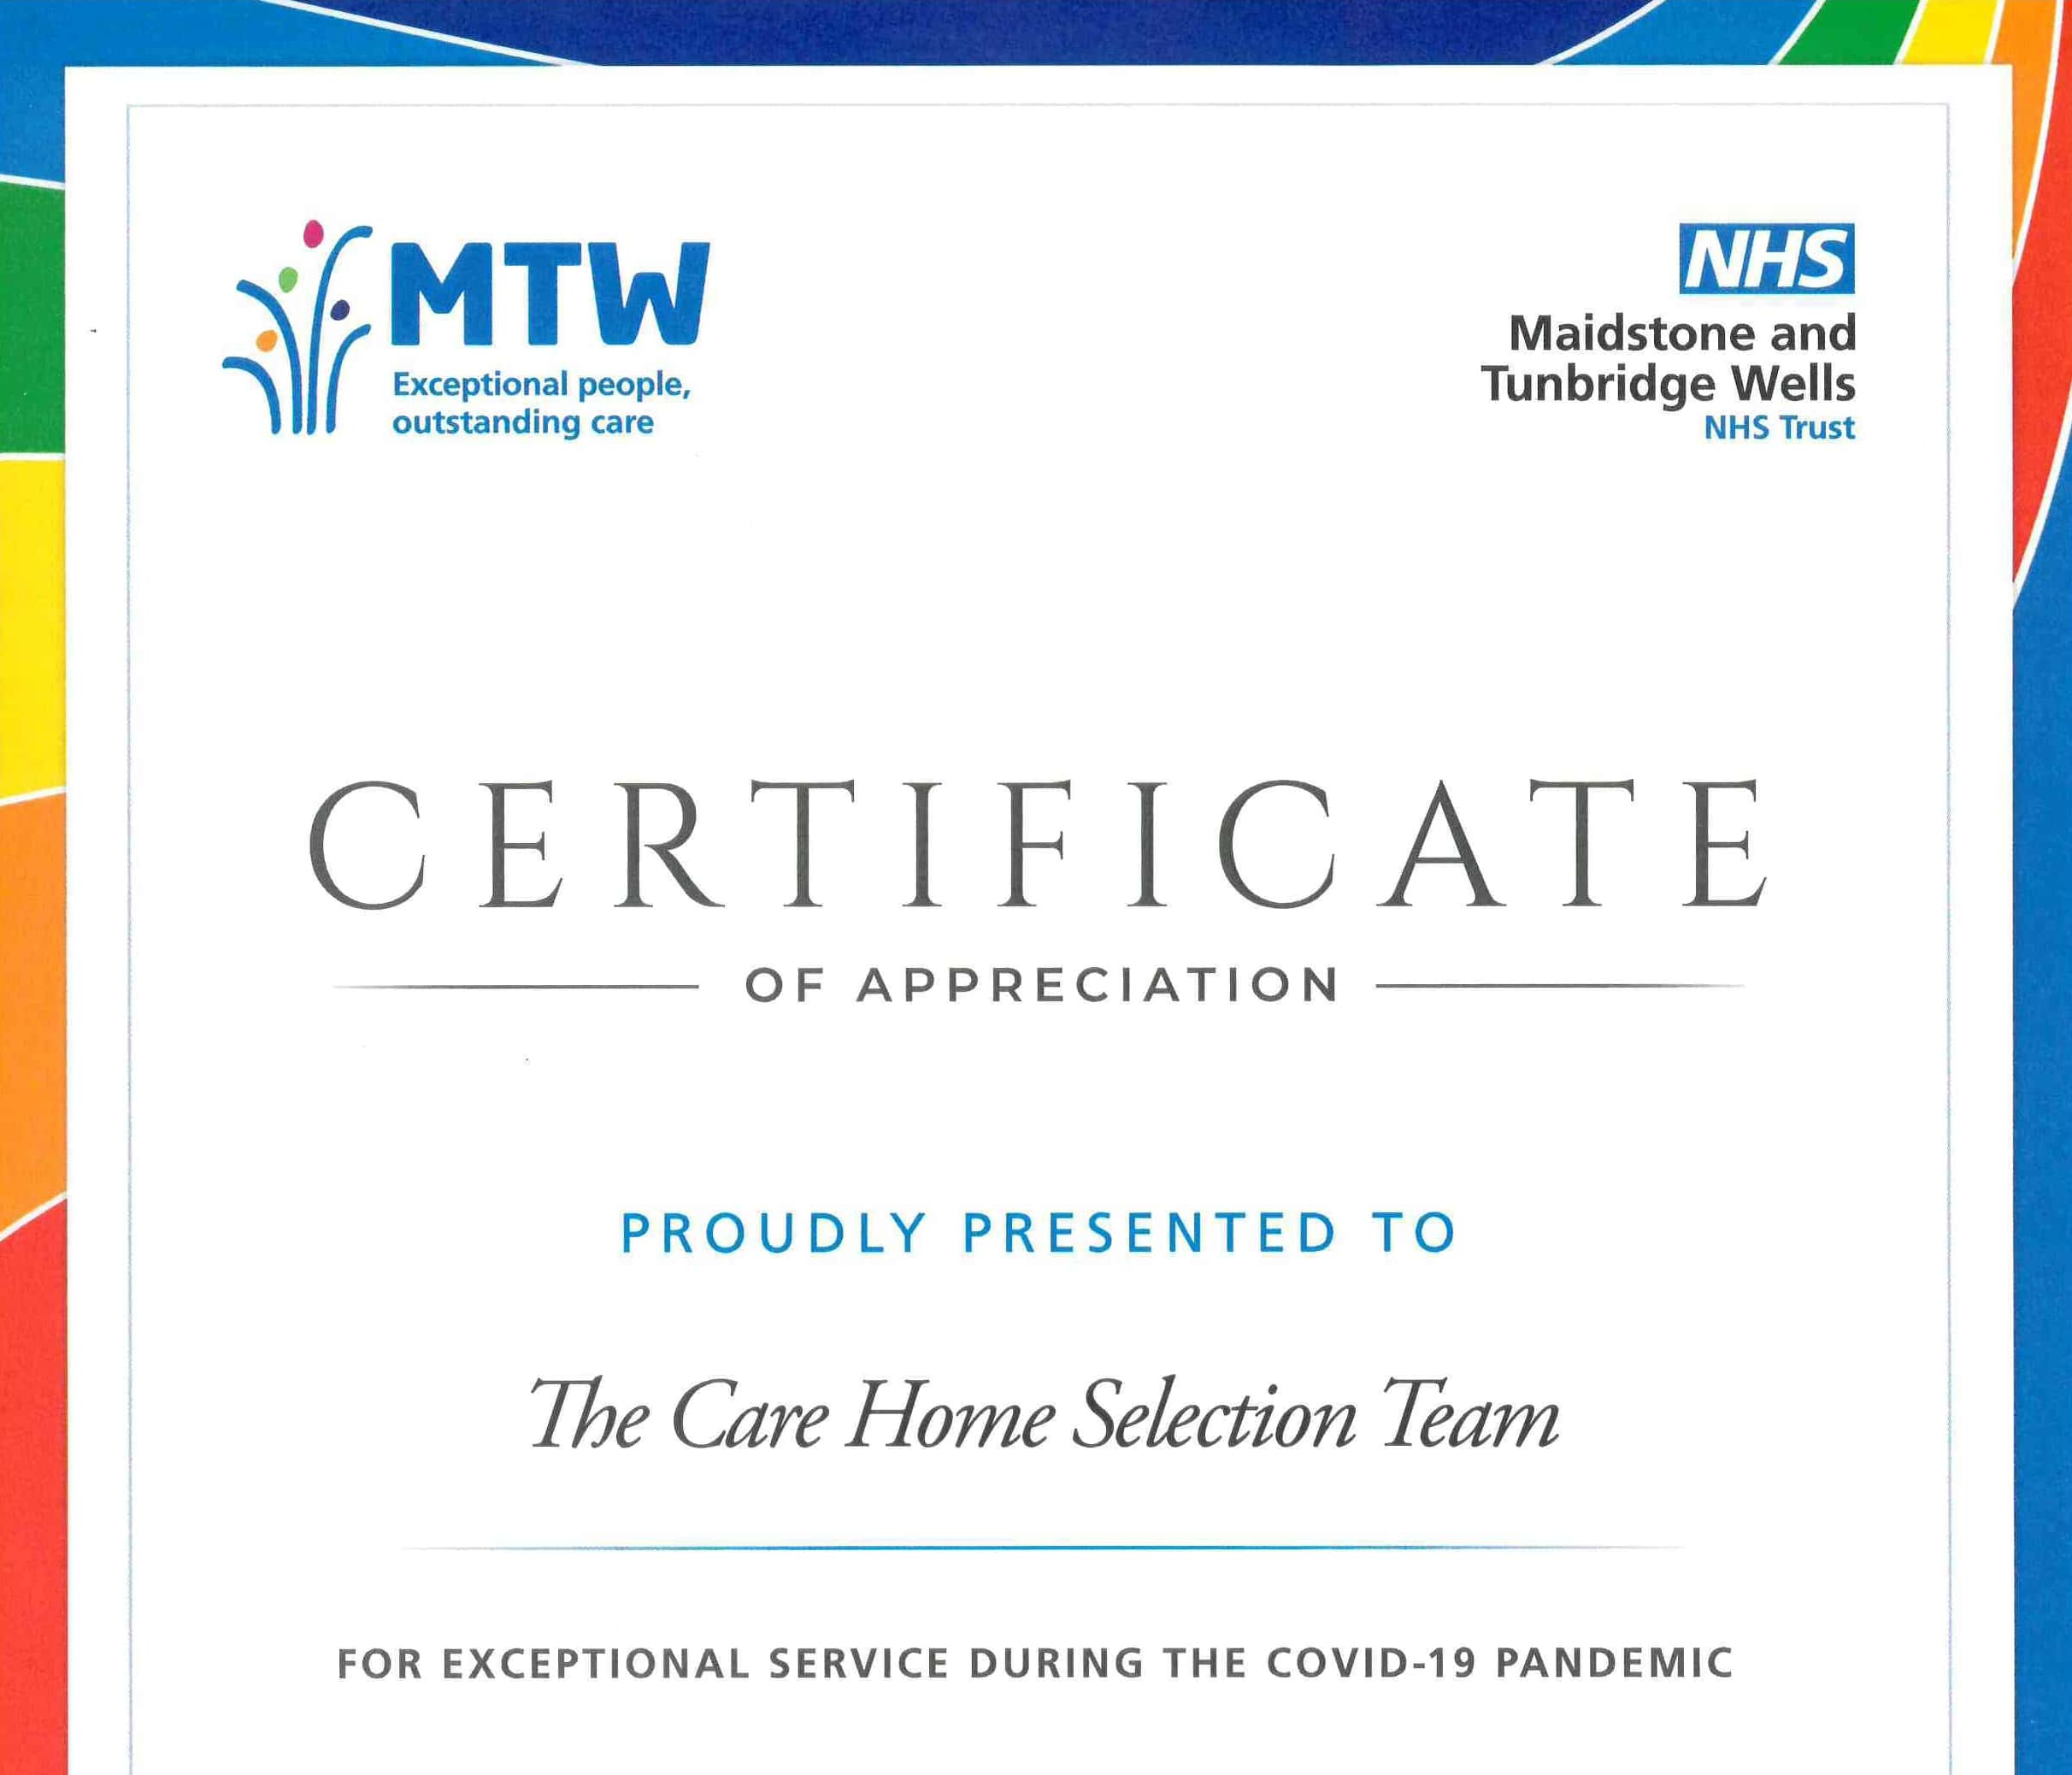 Recognition from our partners at Maidstone and Tunbridge Wells NHS Trust